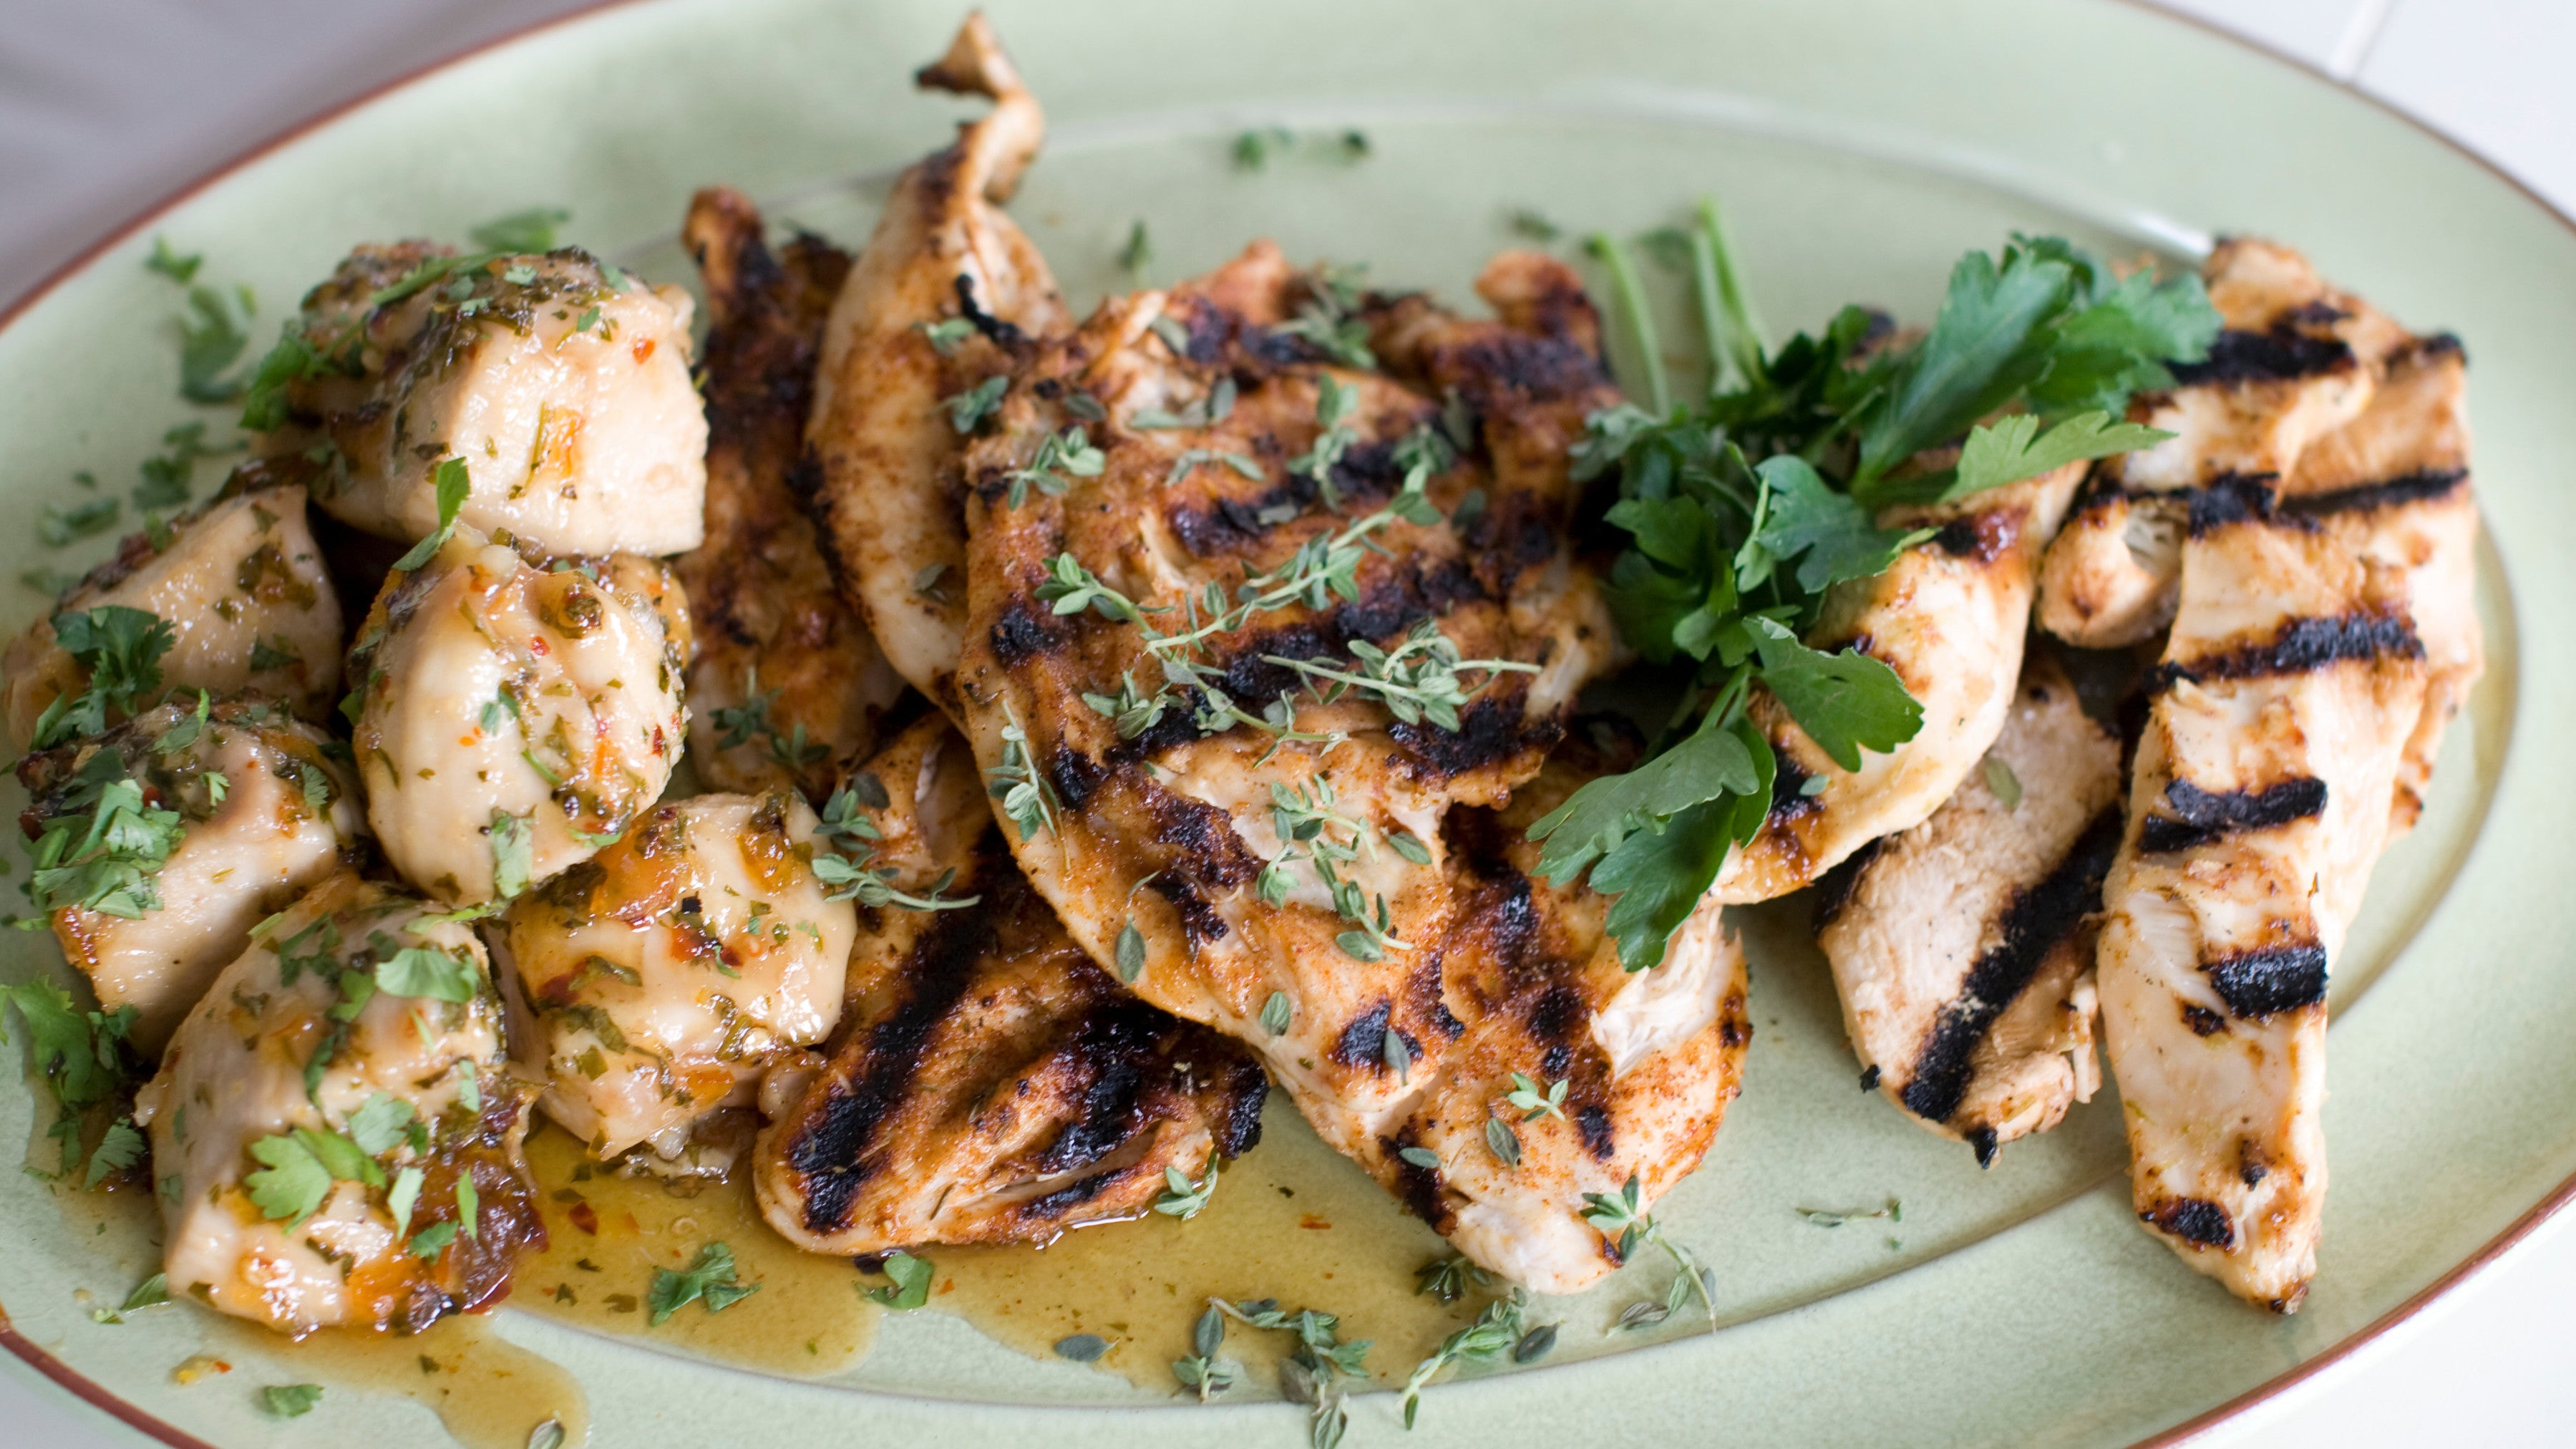 White Meat May Be As Bad As Red Meat For Cholesterol